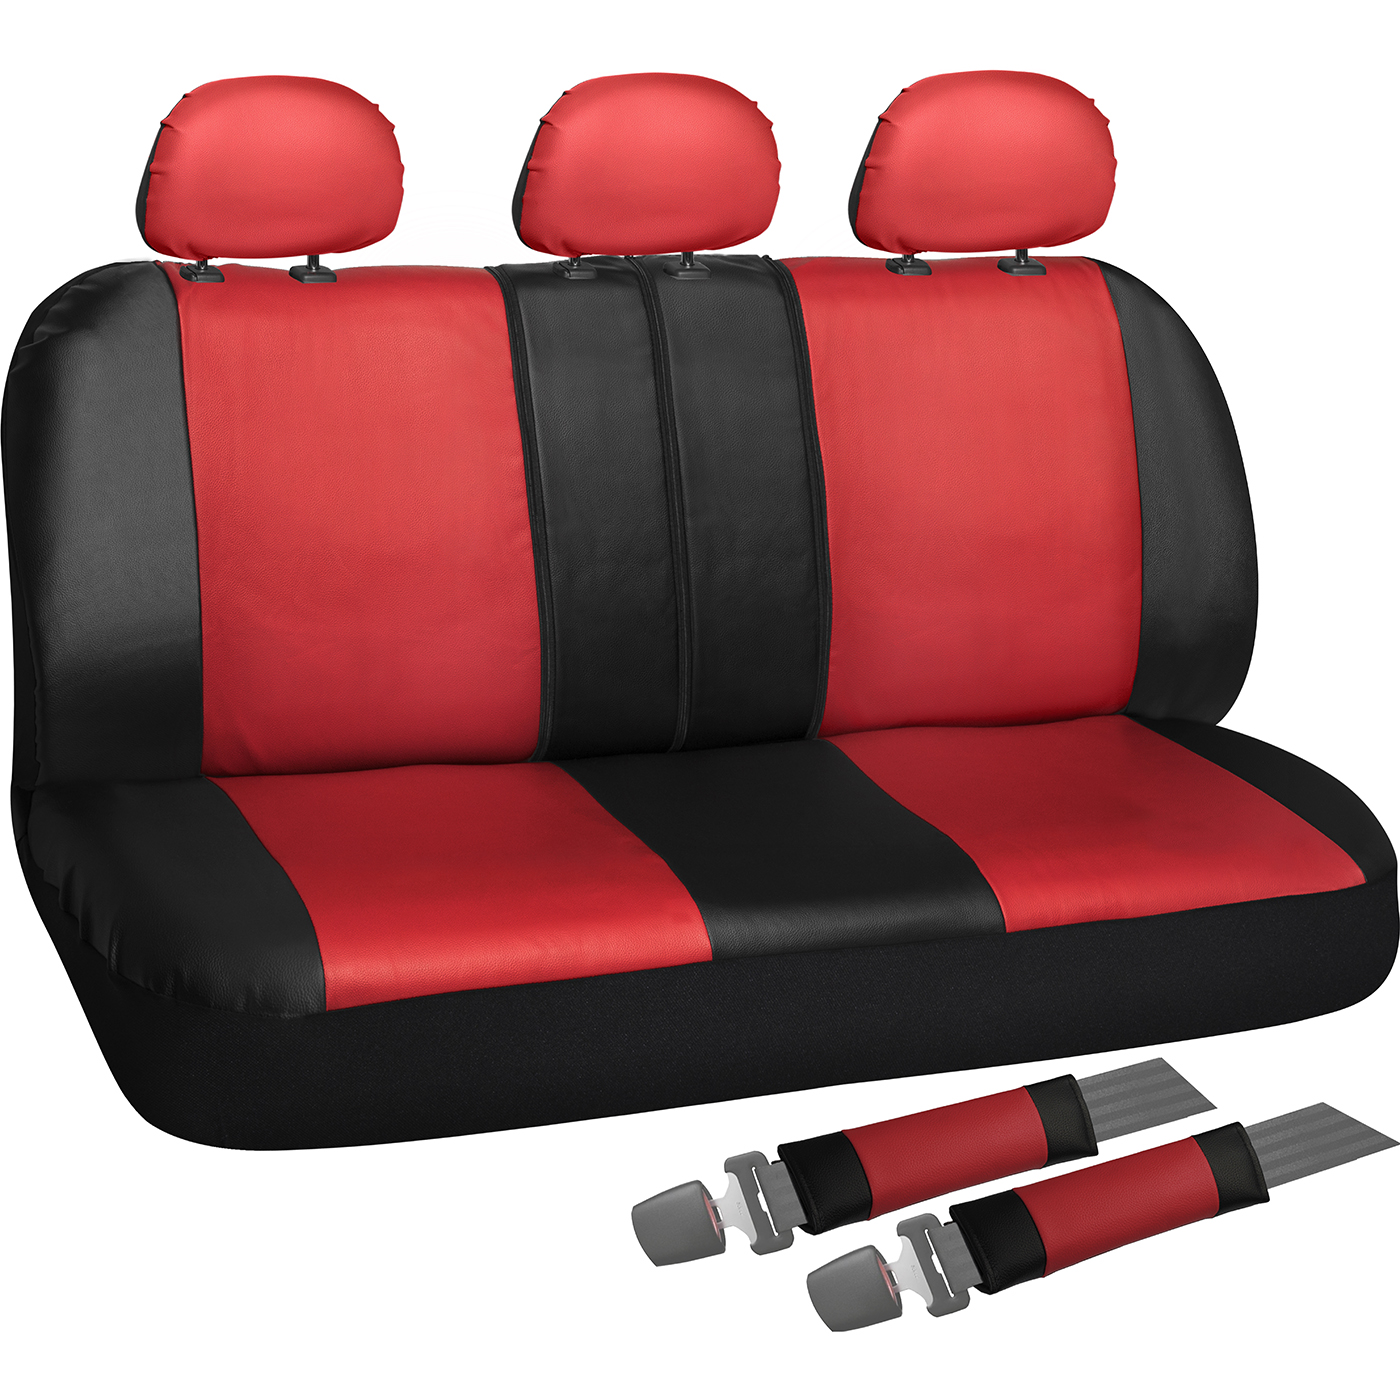 OxGord Back Seat Cover - PU Leather with Two-Toned Rear Bench Universal Fit Car, Truck, SUV, Van - 8 Piece